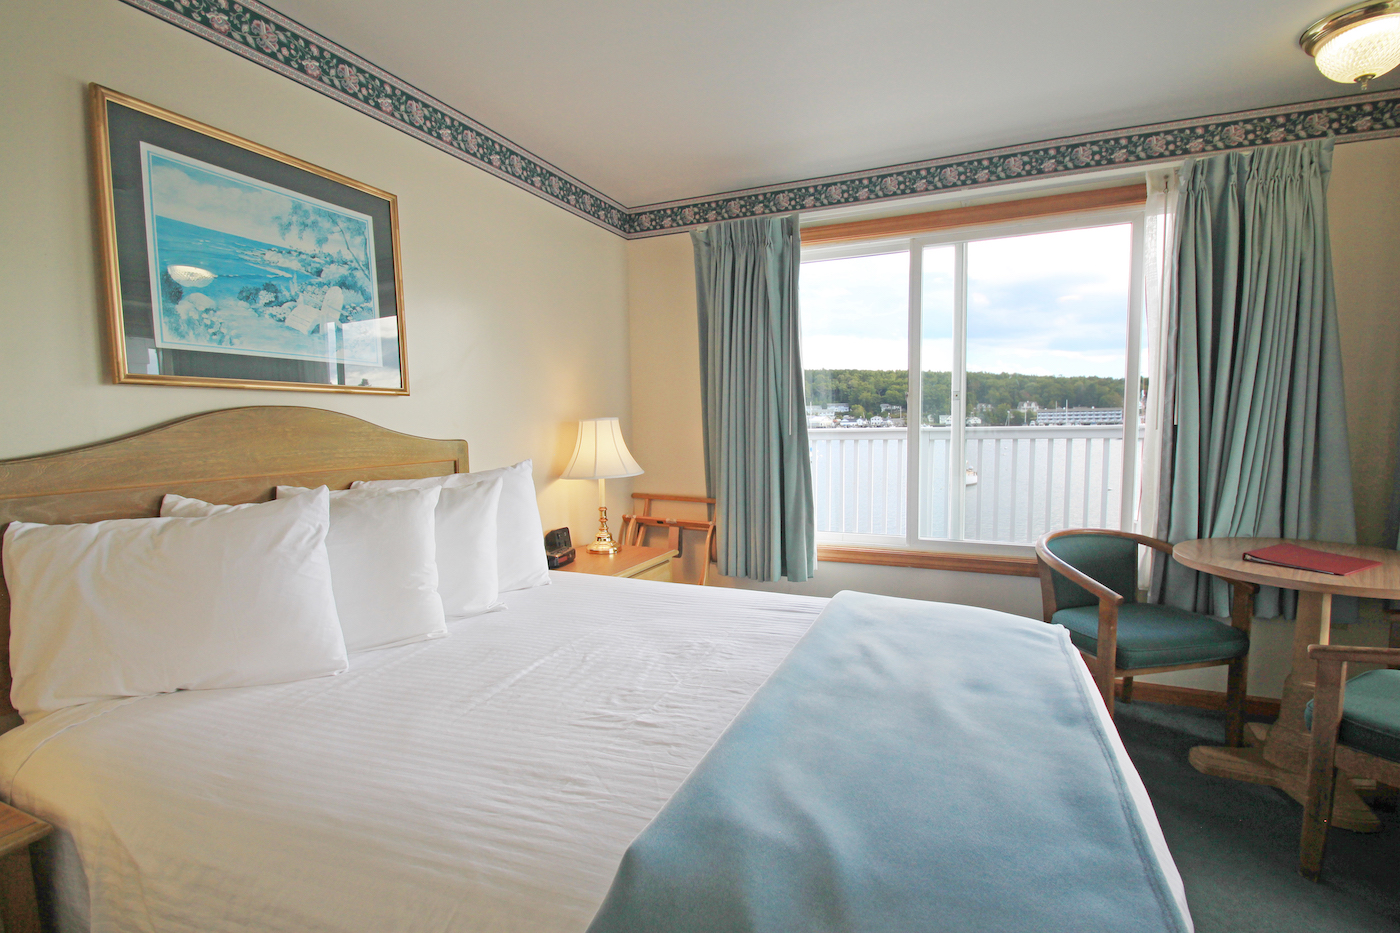 Boothbay Harbor Hotel Rates